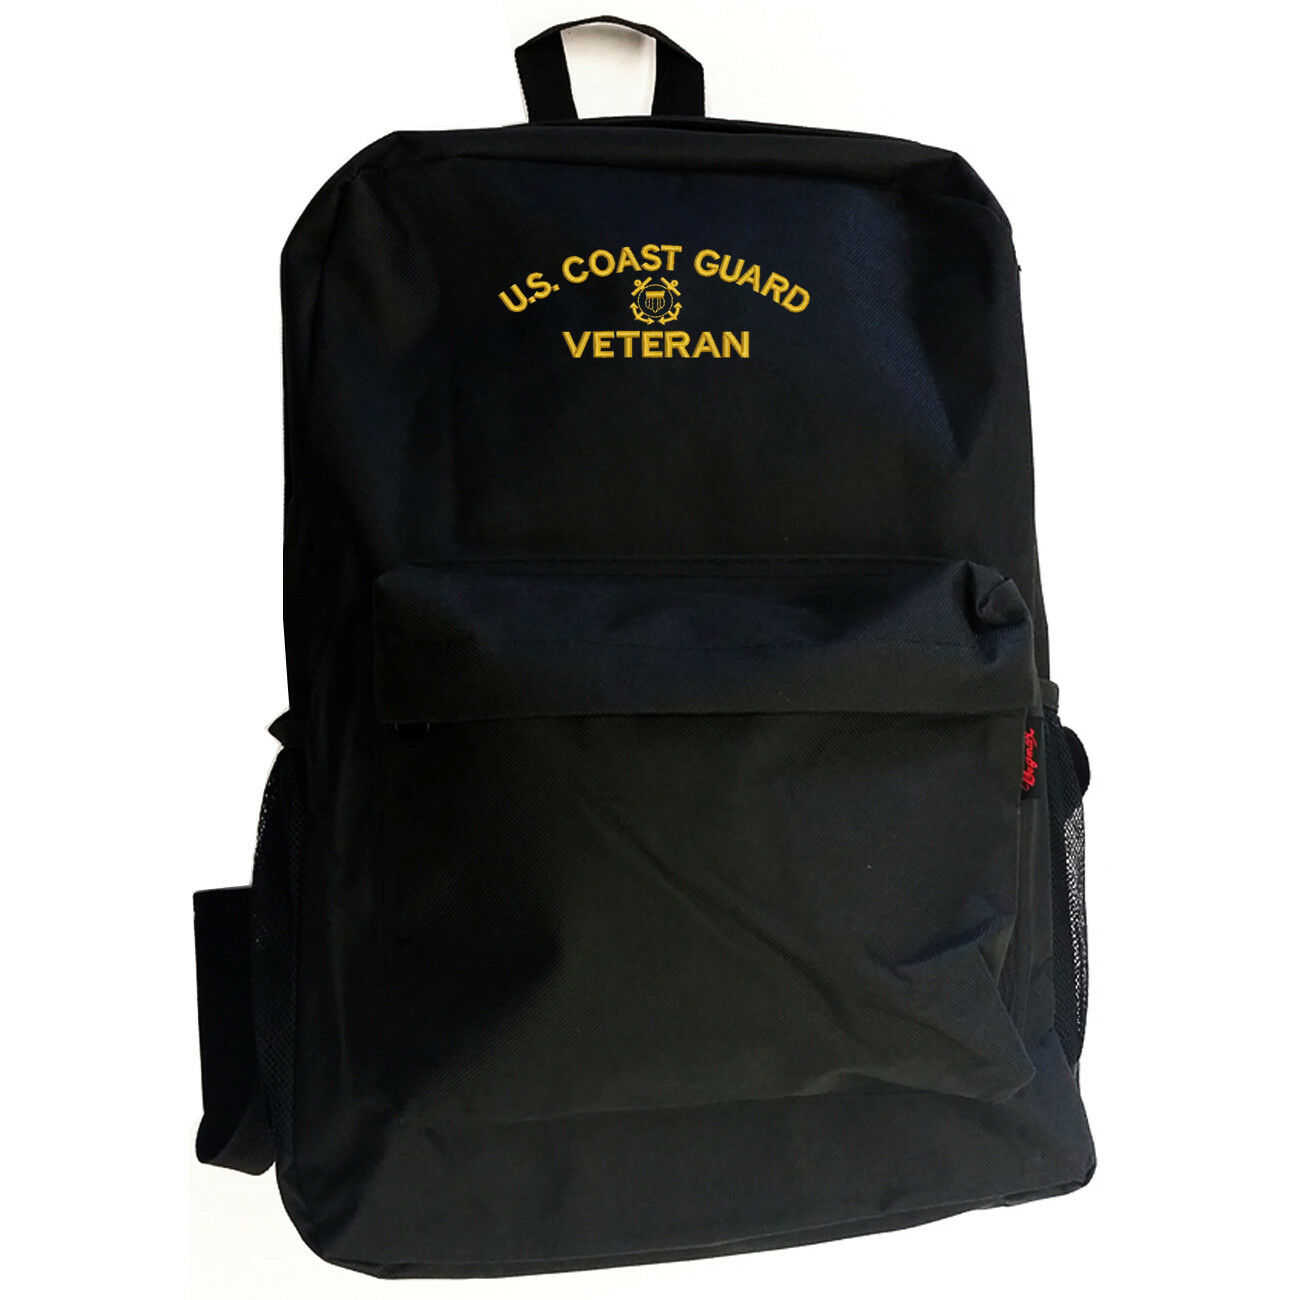 USCG VETERAN GUARD COAST GUARD VETERAN VETERAN Black Backpack Bag Hipster 9d3452